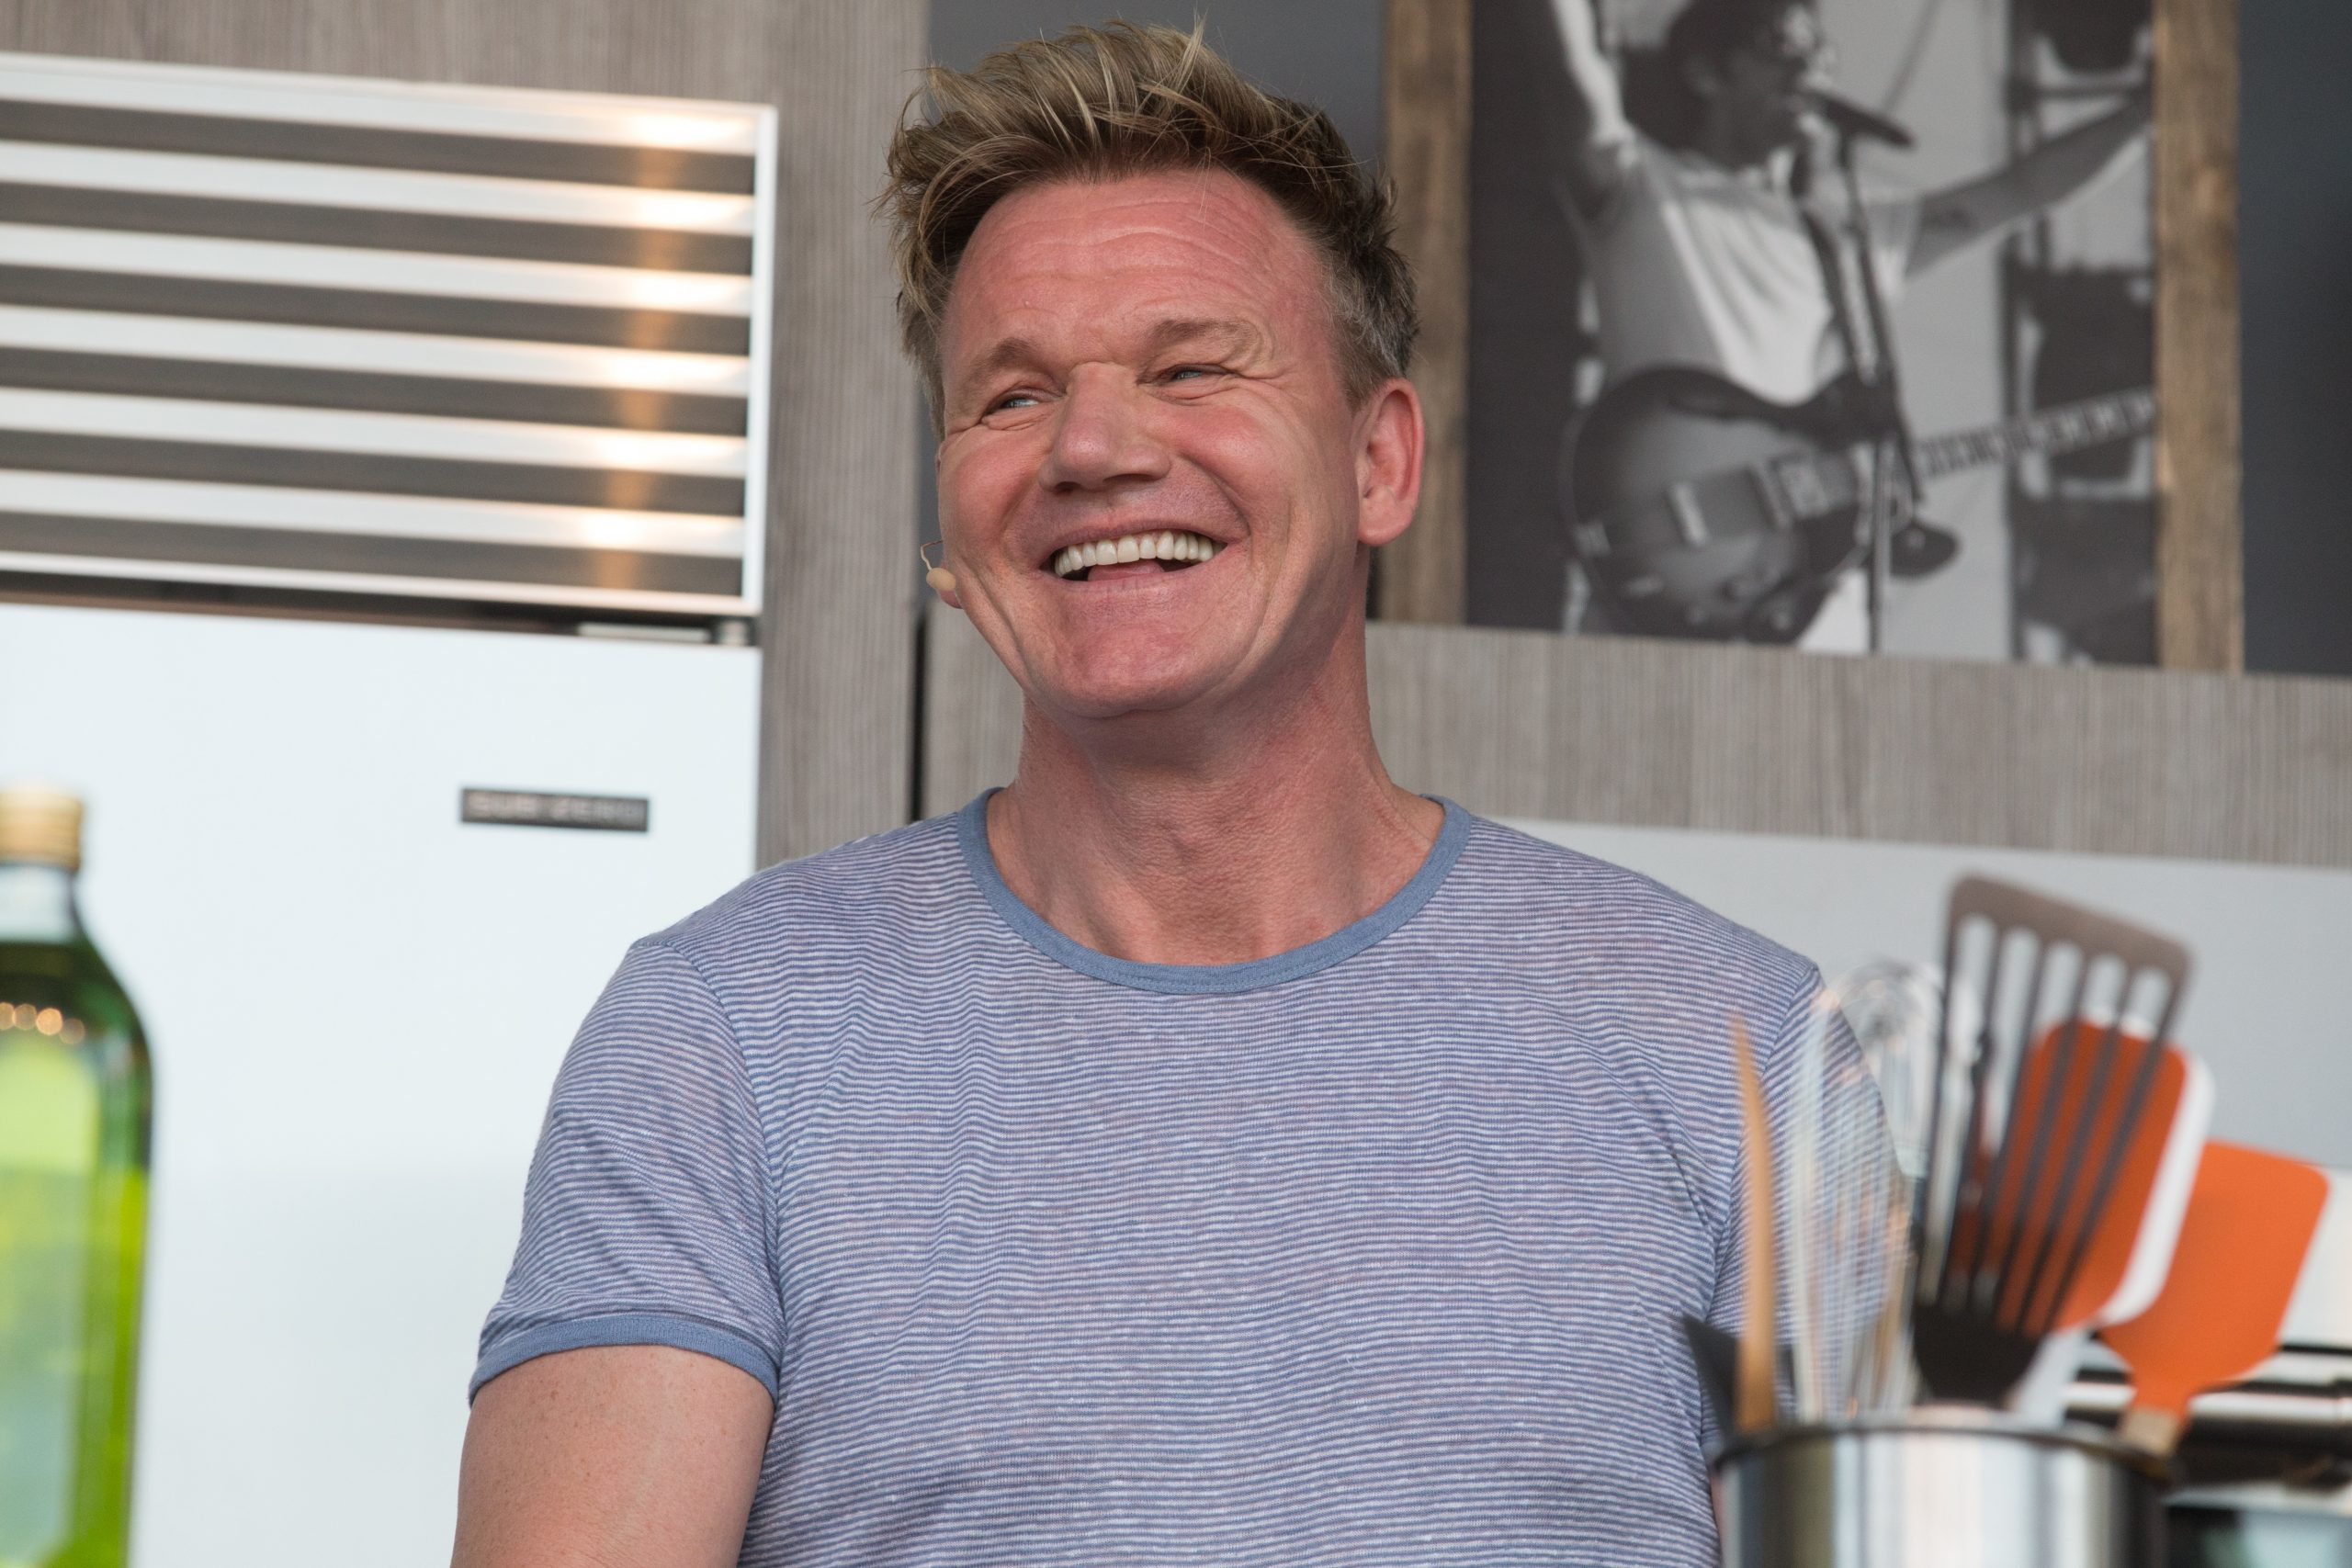 Gordon Ramsay will Open His First South Florida Restaurant